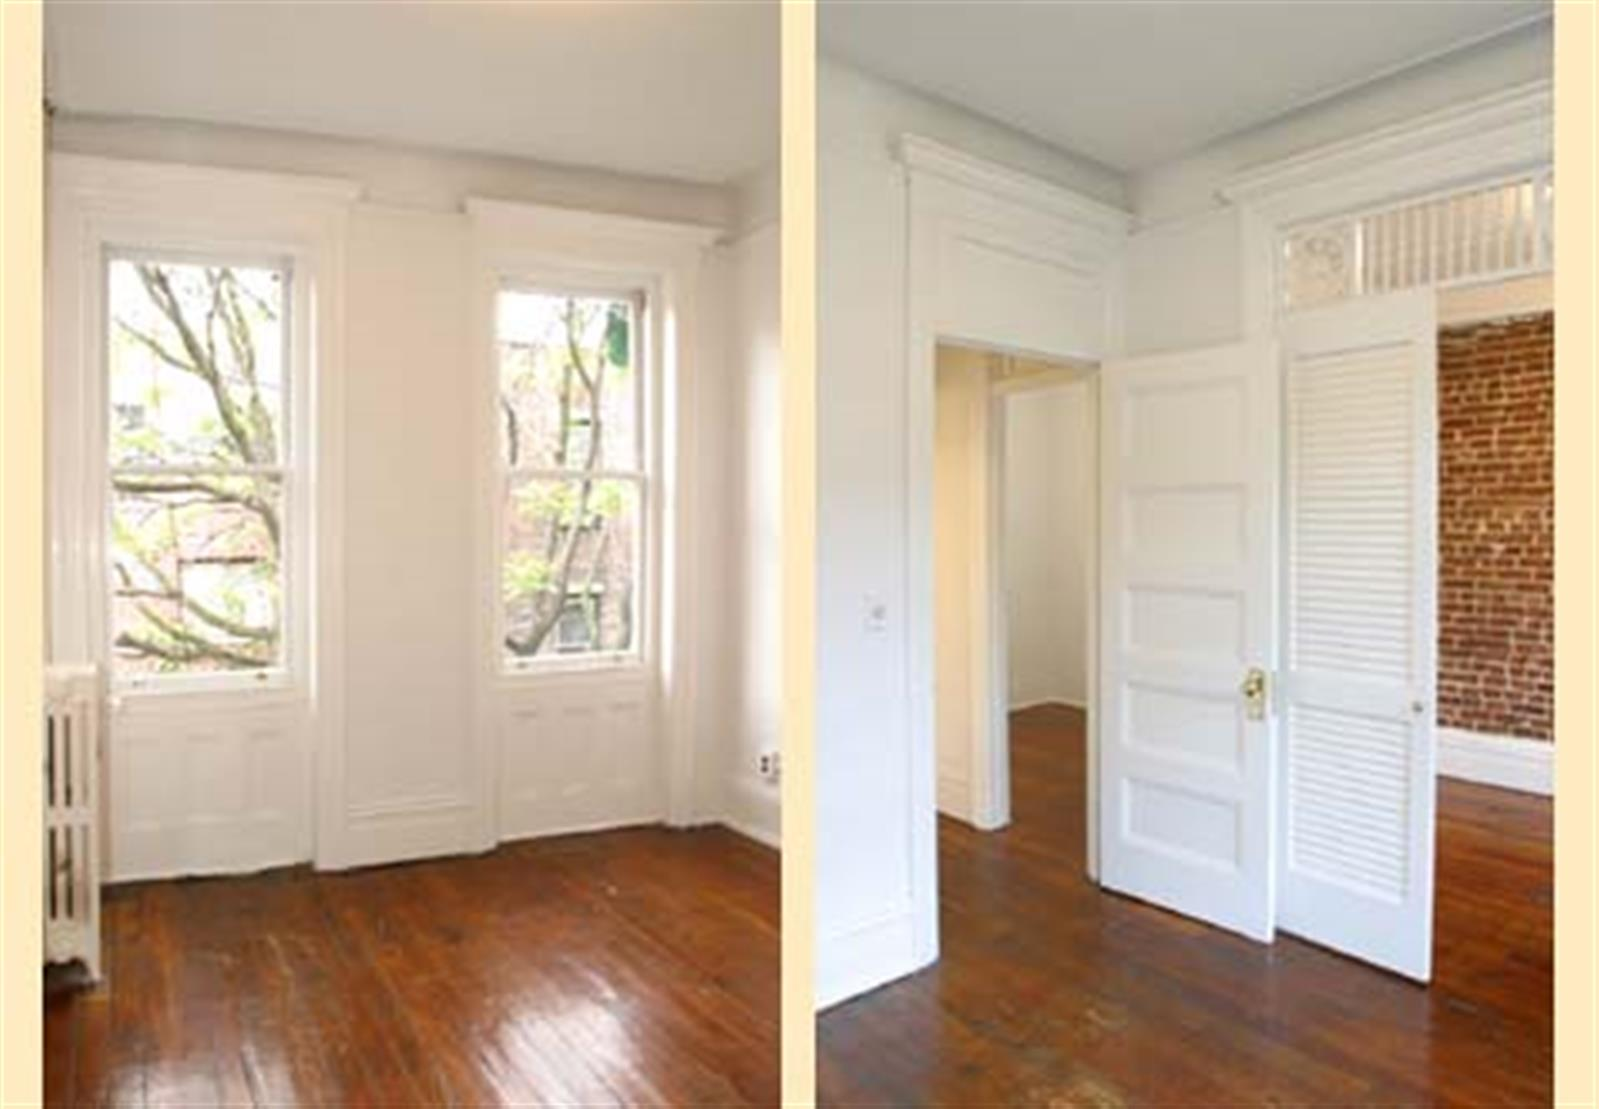 TWO BEDROOMS - Upper East Side